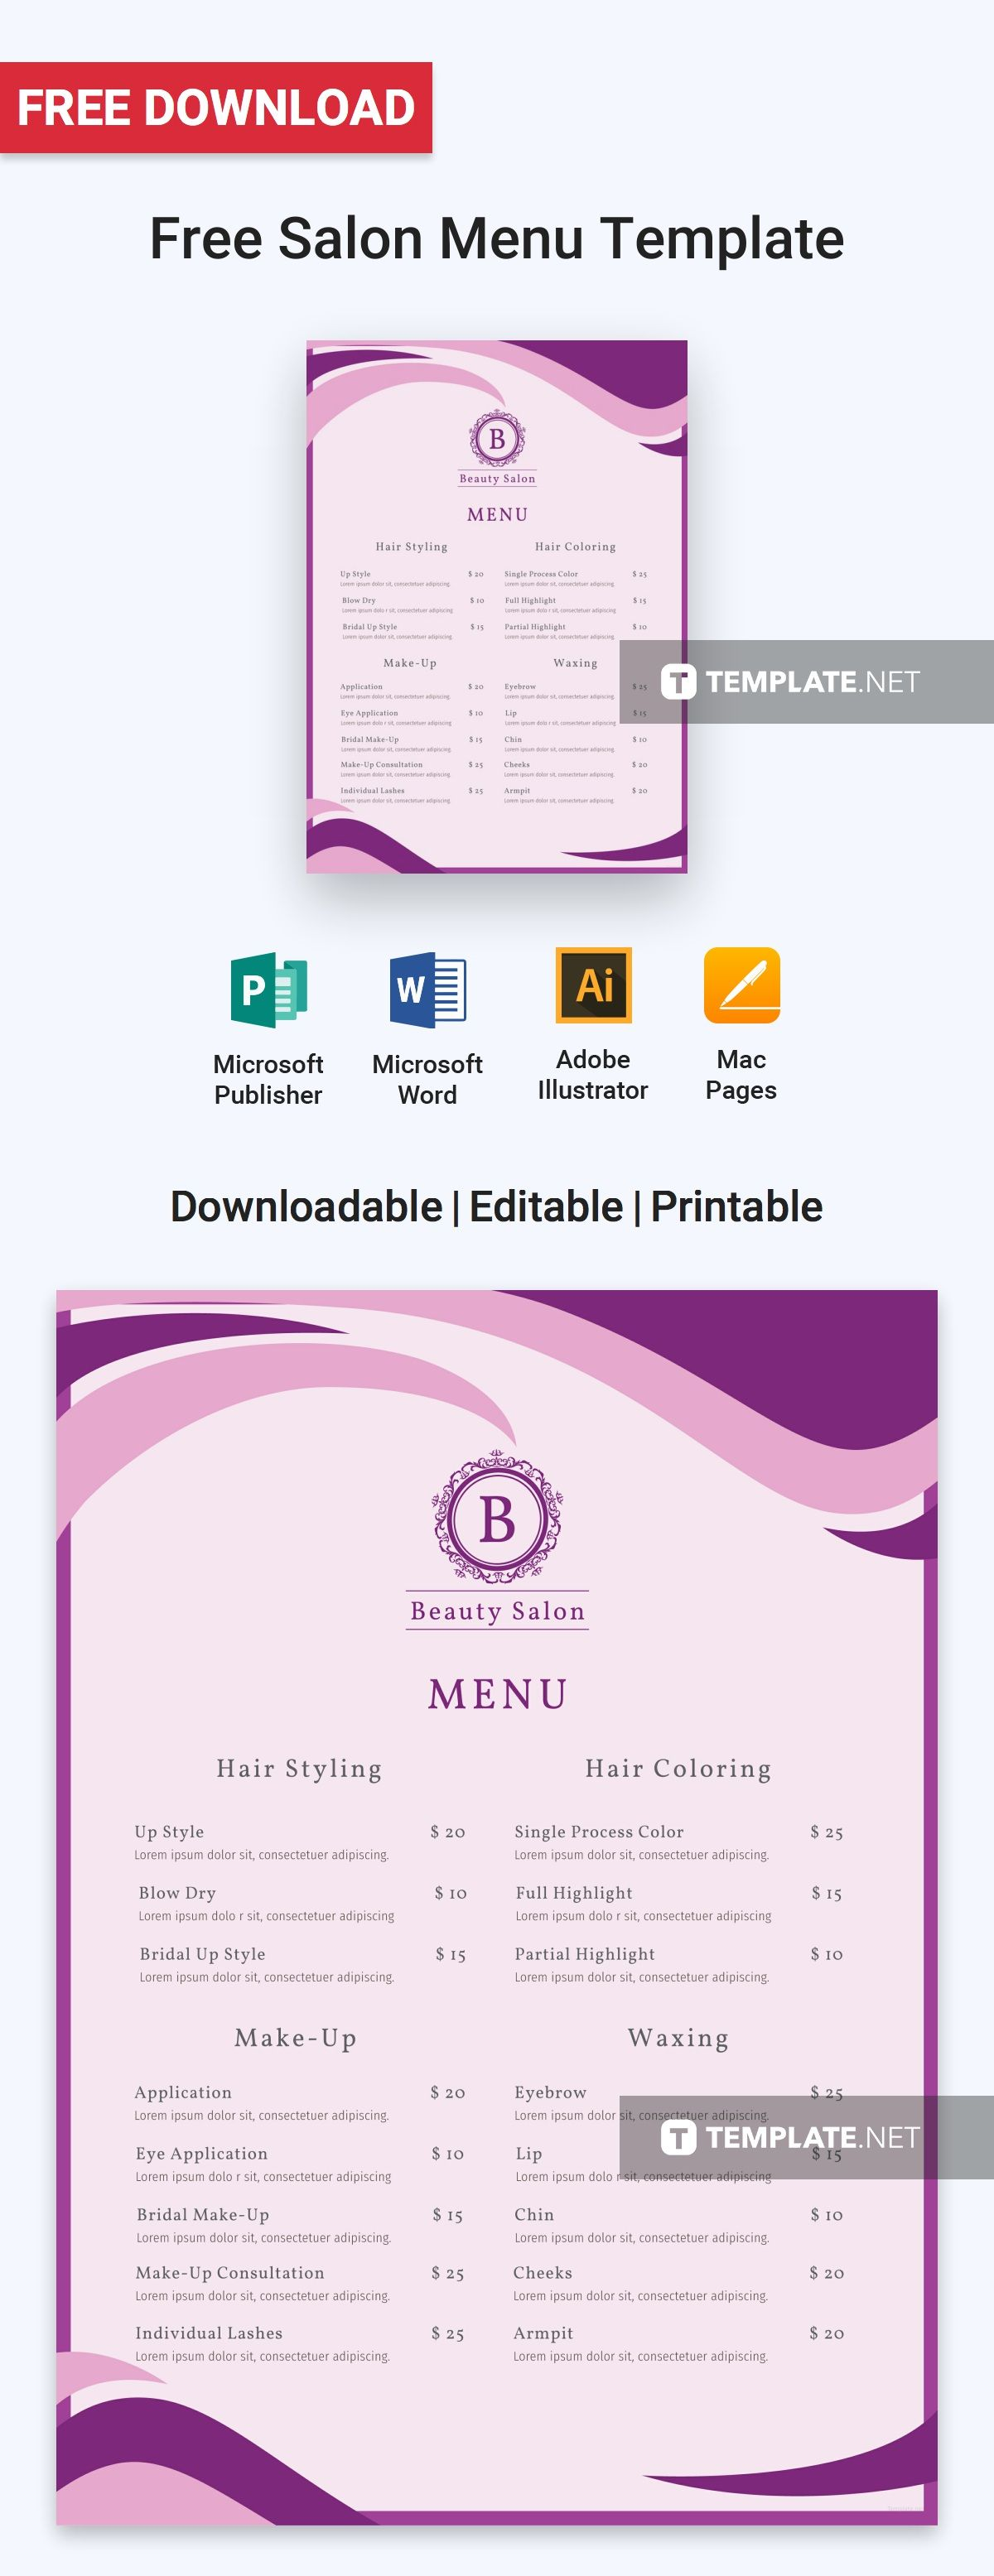 Free salon menu free menu templates pinterest menu templates free salon menu free menu templates pinterest menu templates salon menu and free menu templates maxwellsz